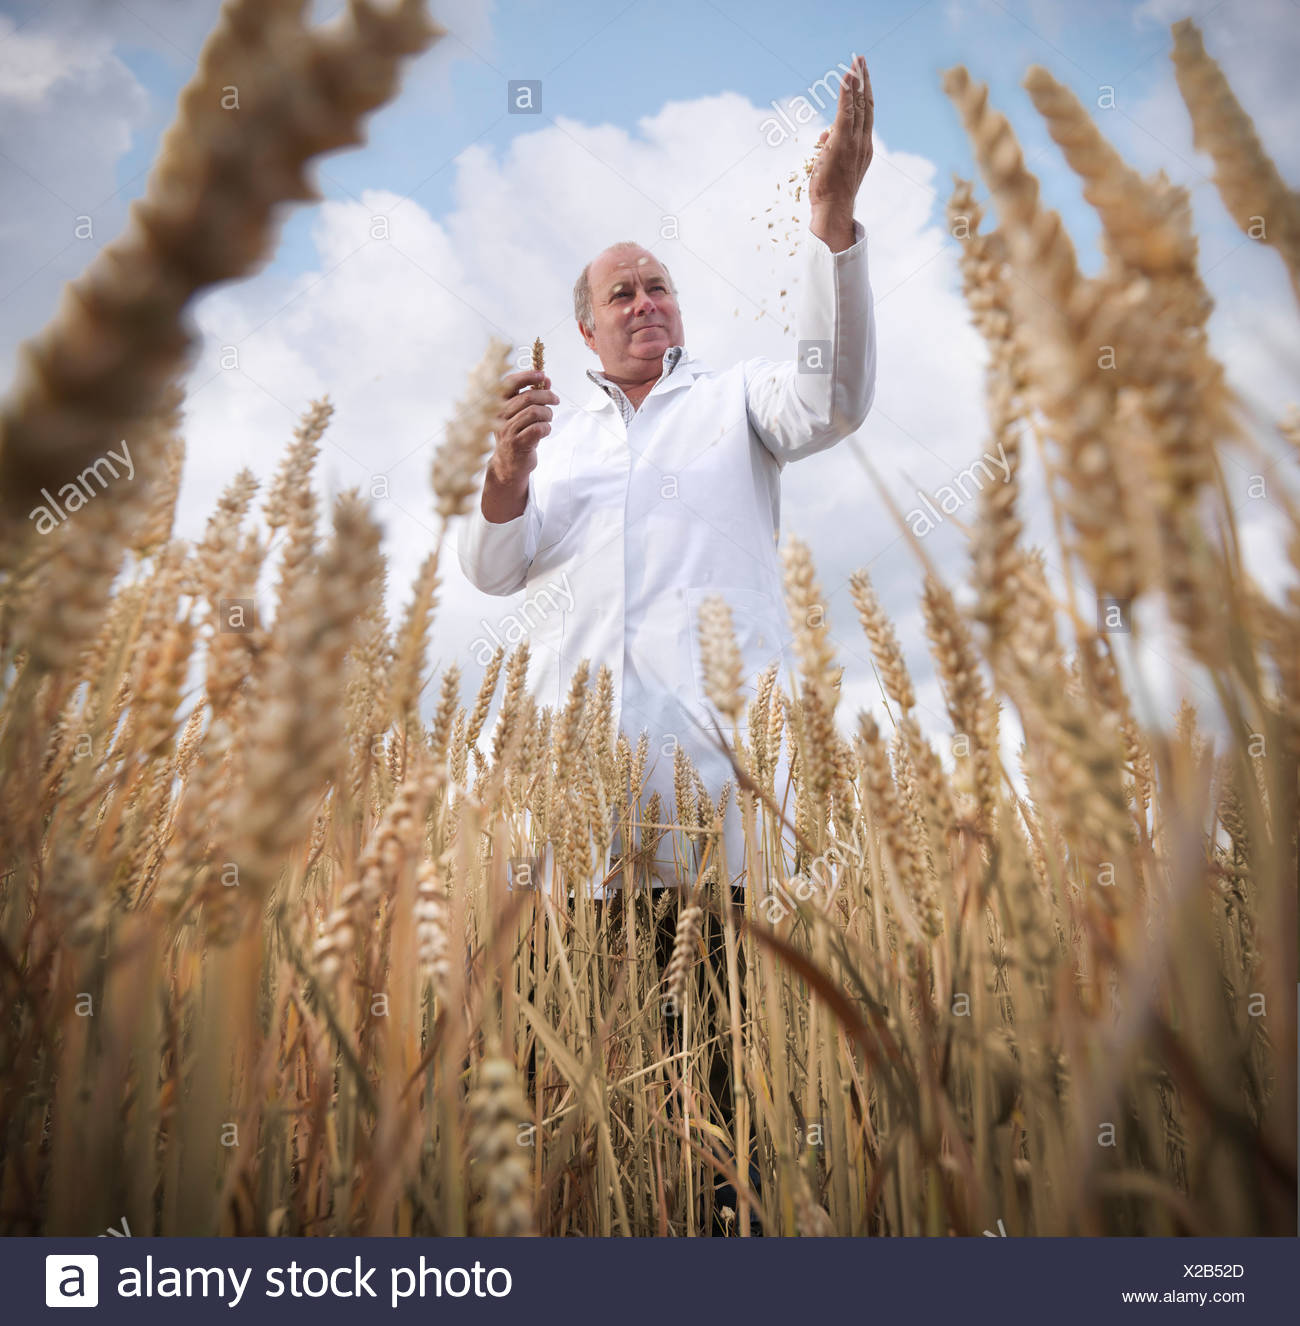 Scientist examining wheat grain in field - Stock Image